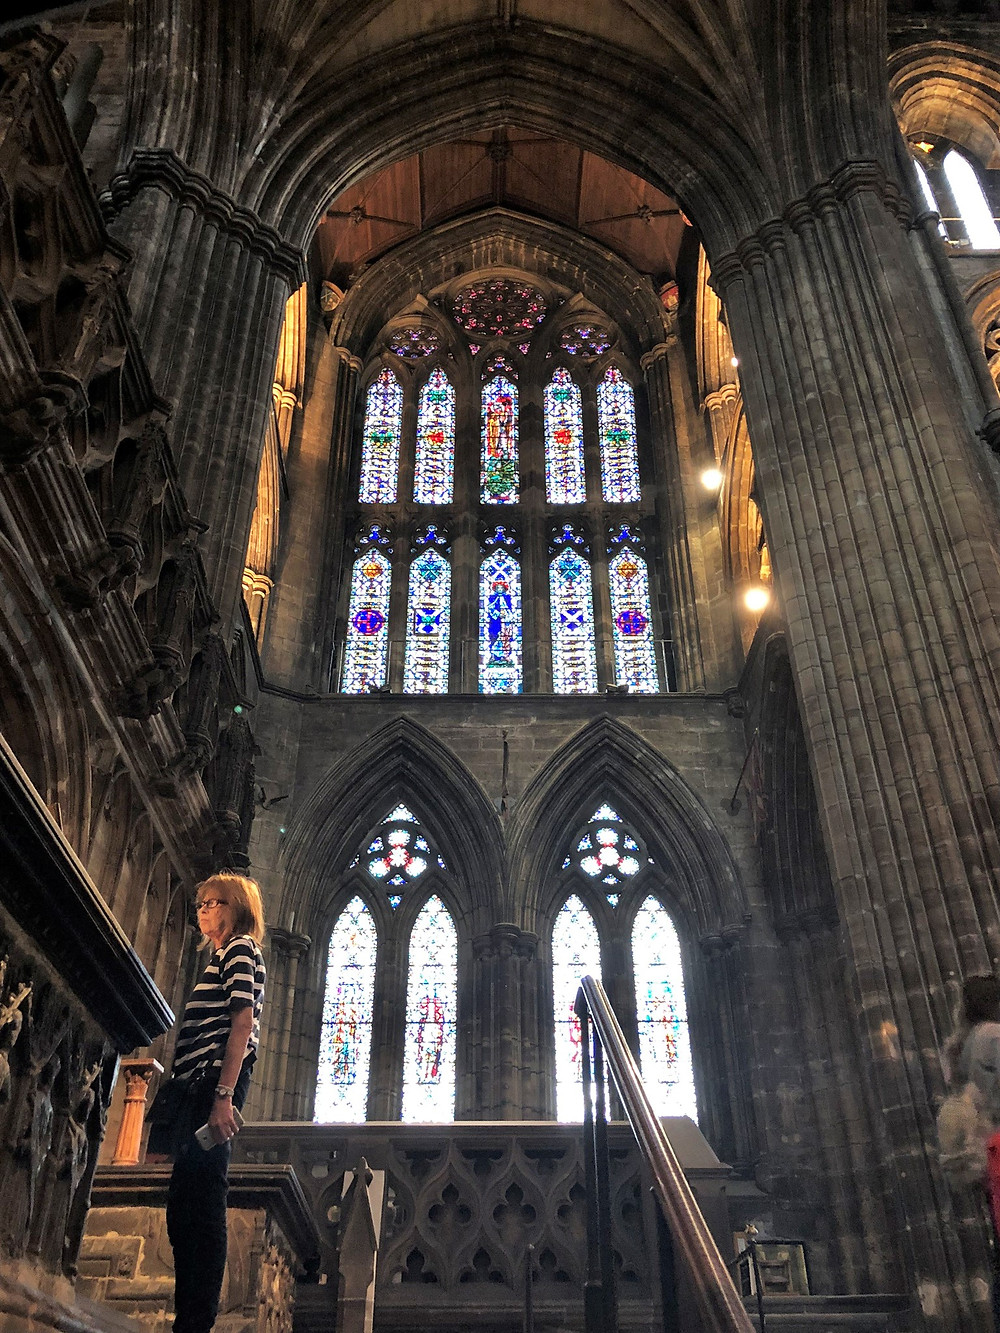 Post-war stained glass windows in Glasgow Cathedral